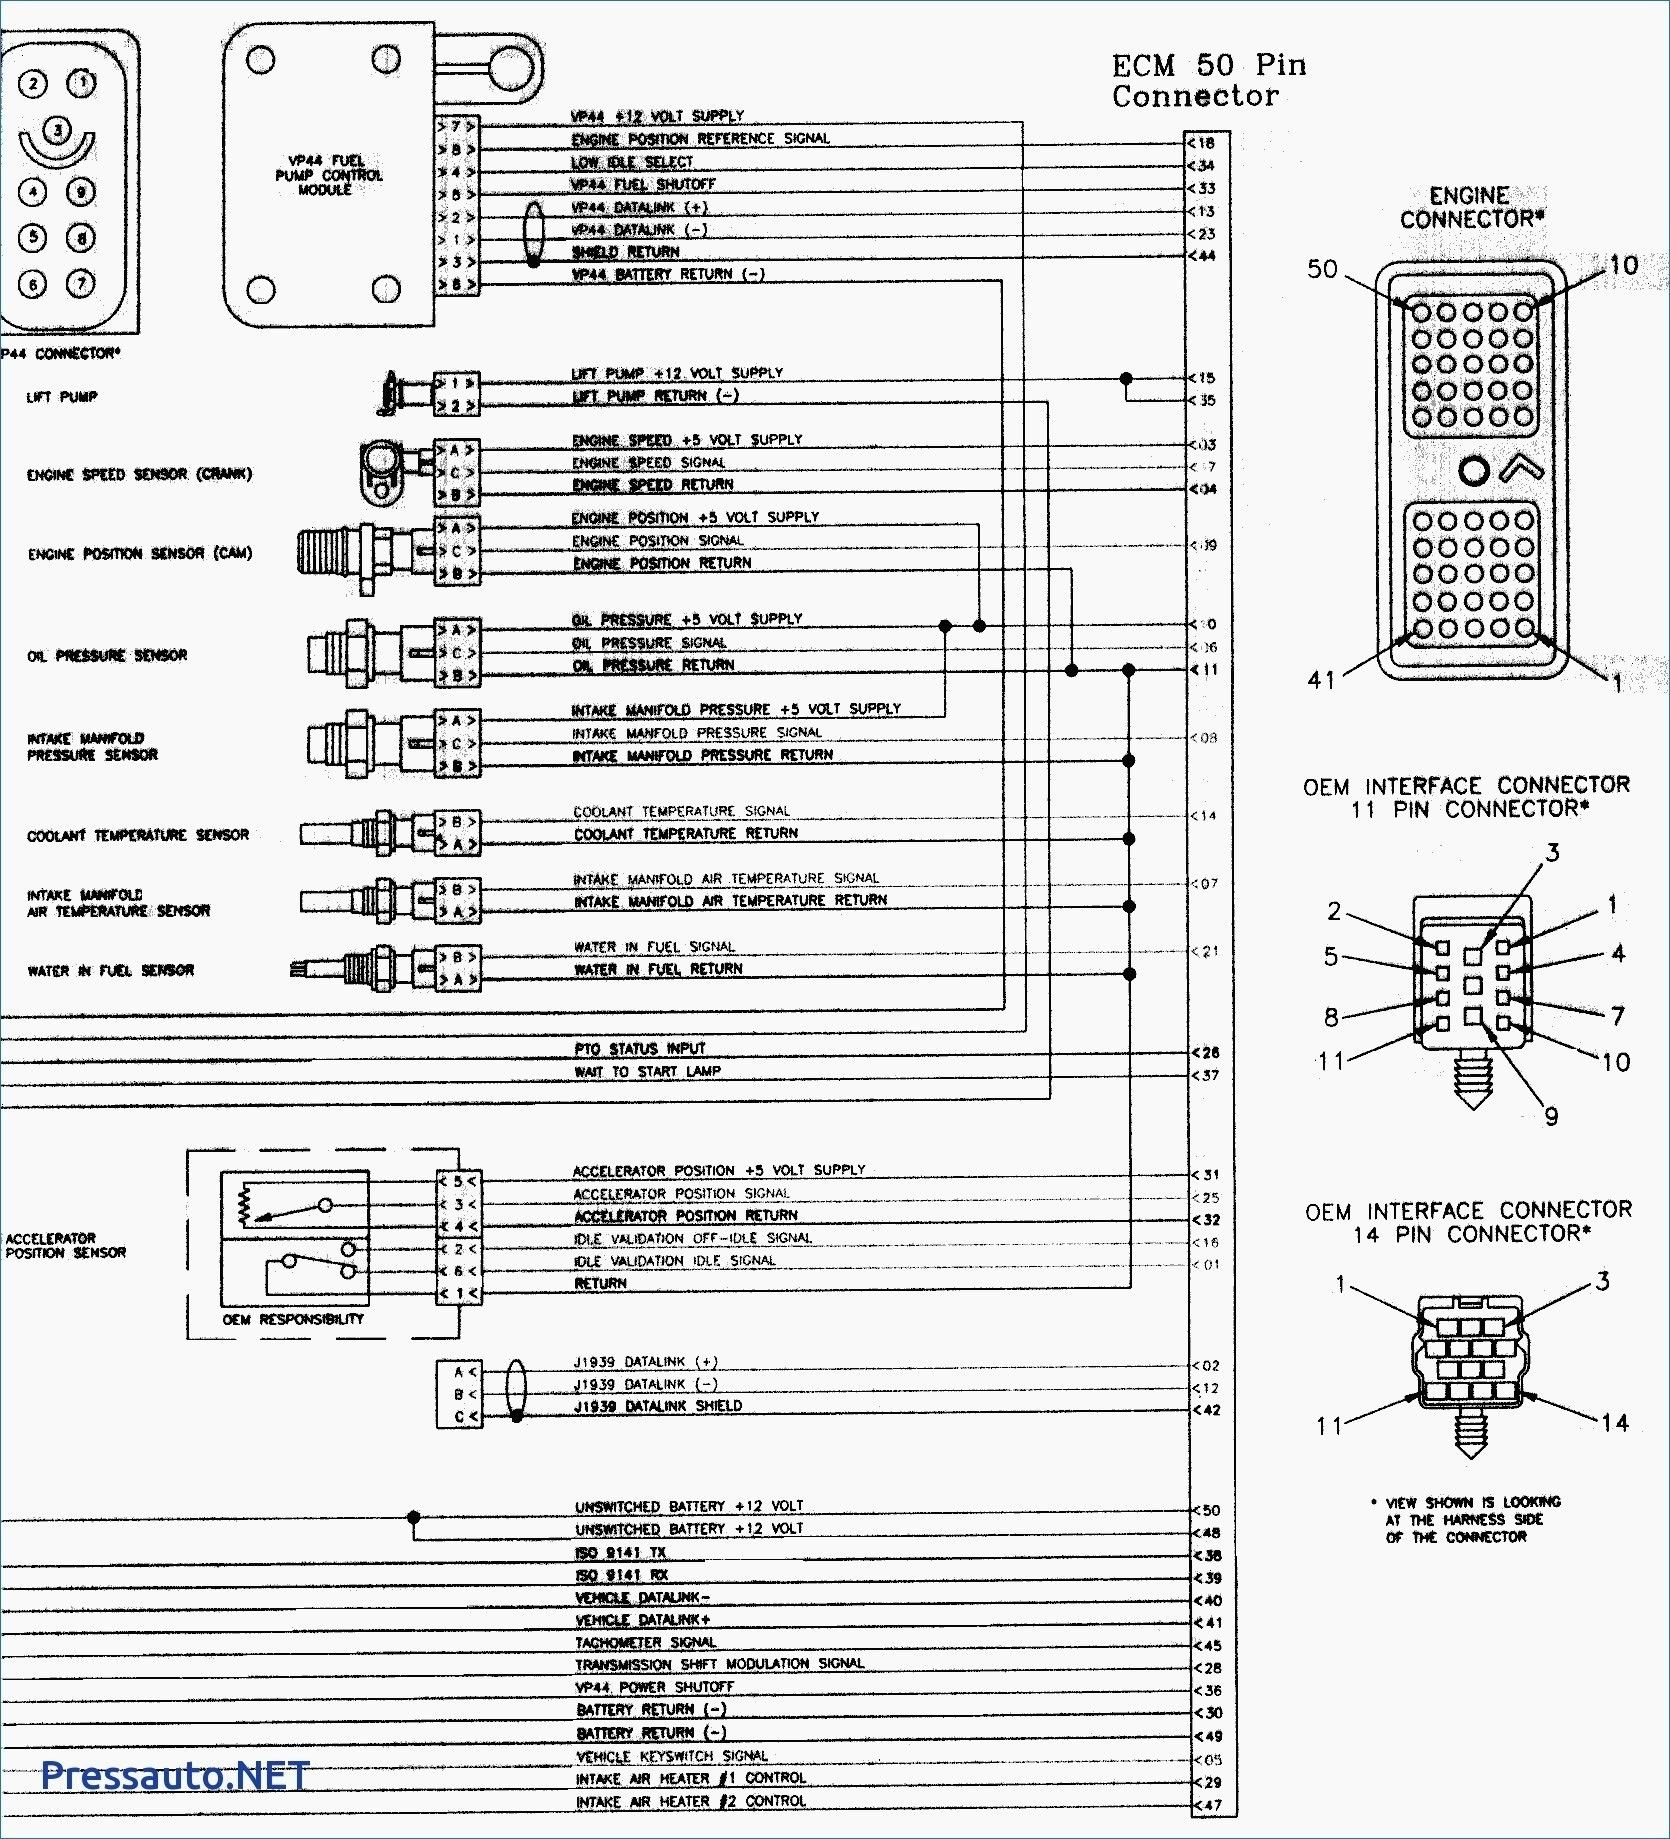 wiring diagram for 2004 dodge ram 1500 wiring diagram all 2004 dodge ram 1500 wiring diagram 2002 dodge truck wiring diagram #13